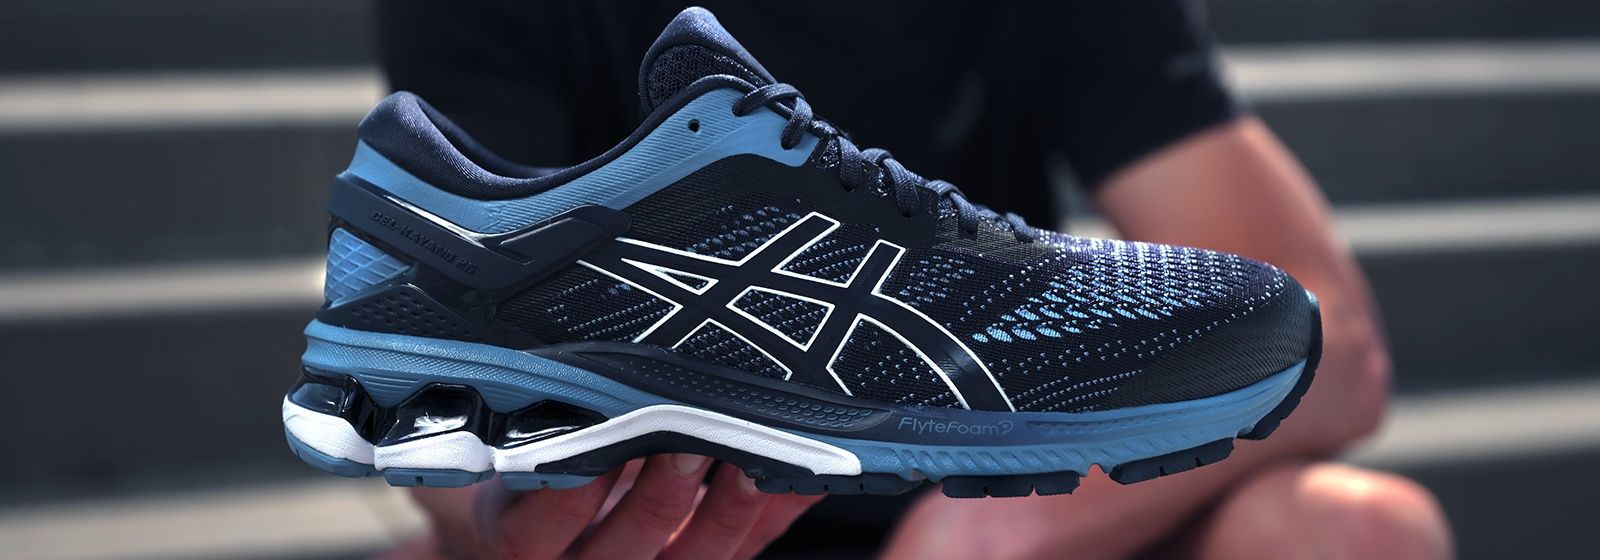 GEL-Kayano 26 Banner